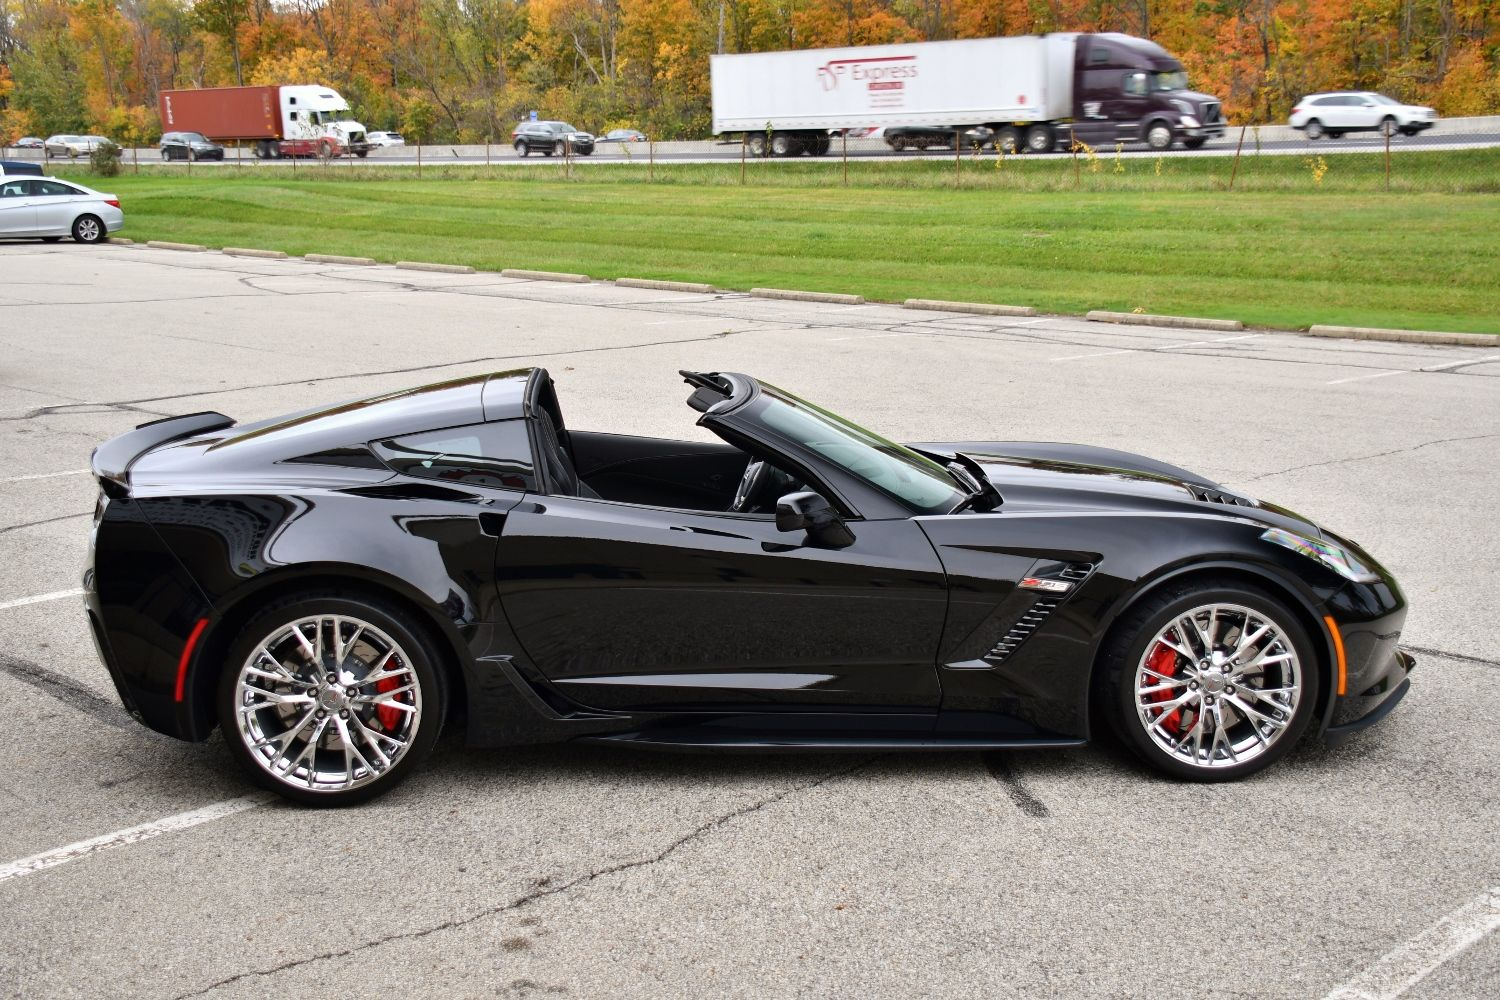 2017 Chevrolet Corvette Z06 7 Speed Chevrolet Corvette Corvette